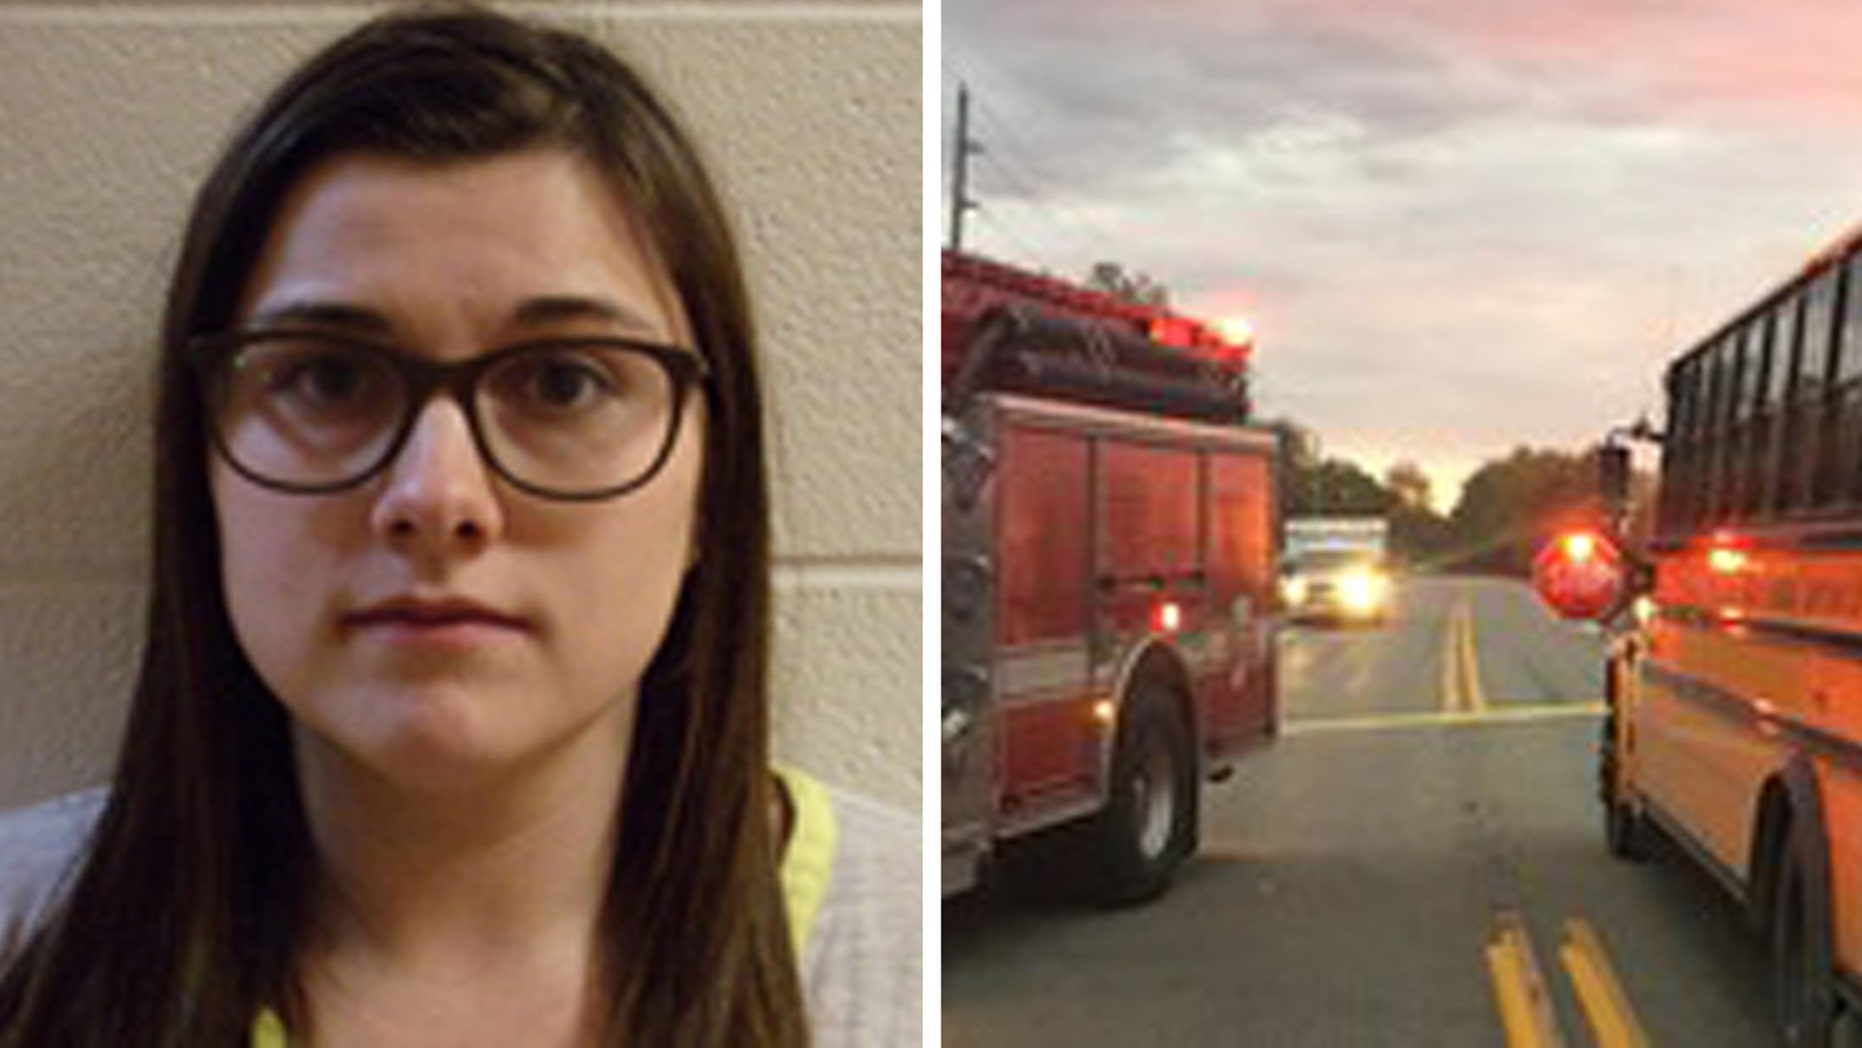 Three children were struck by a vehicle and killed at an Indiana school busstop on Tuesday, and the suspected driver, Alyssa L. Shepherd, was arrested, state police said.